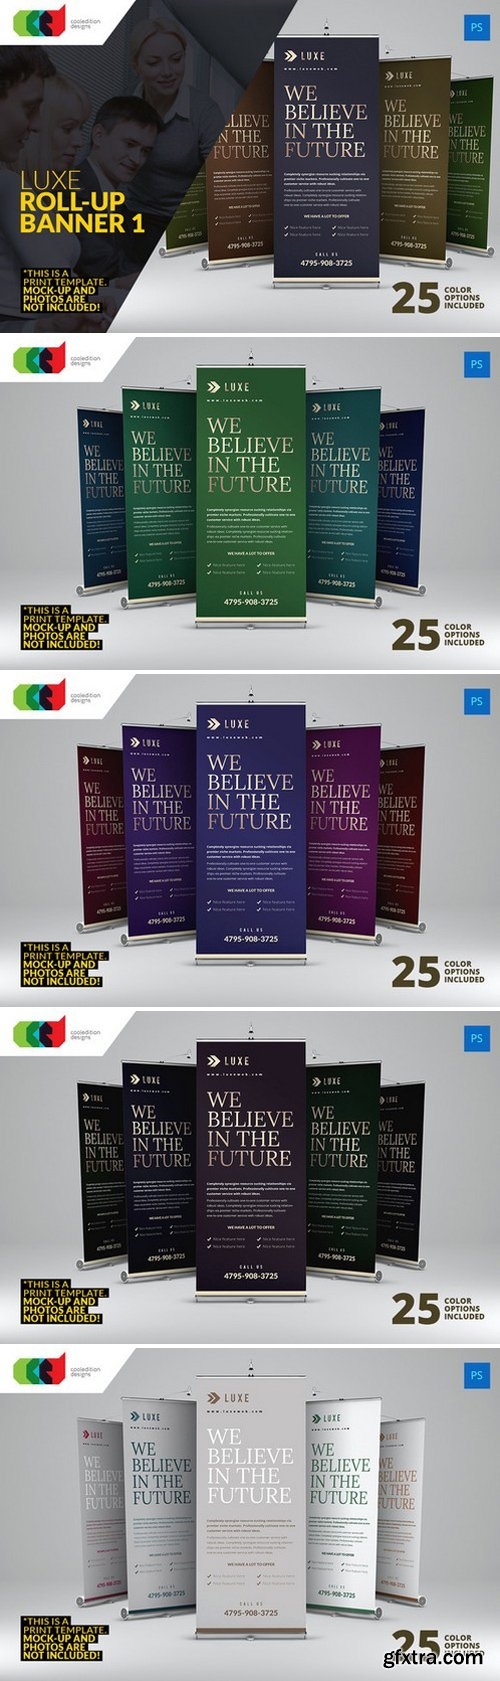 CM - Luxe - Roll-Up Banner 1 331818